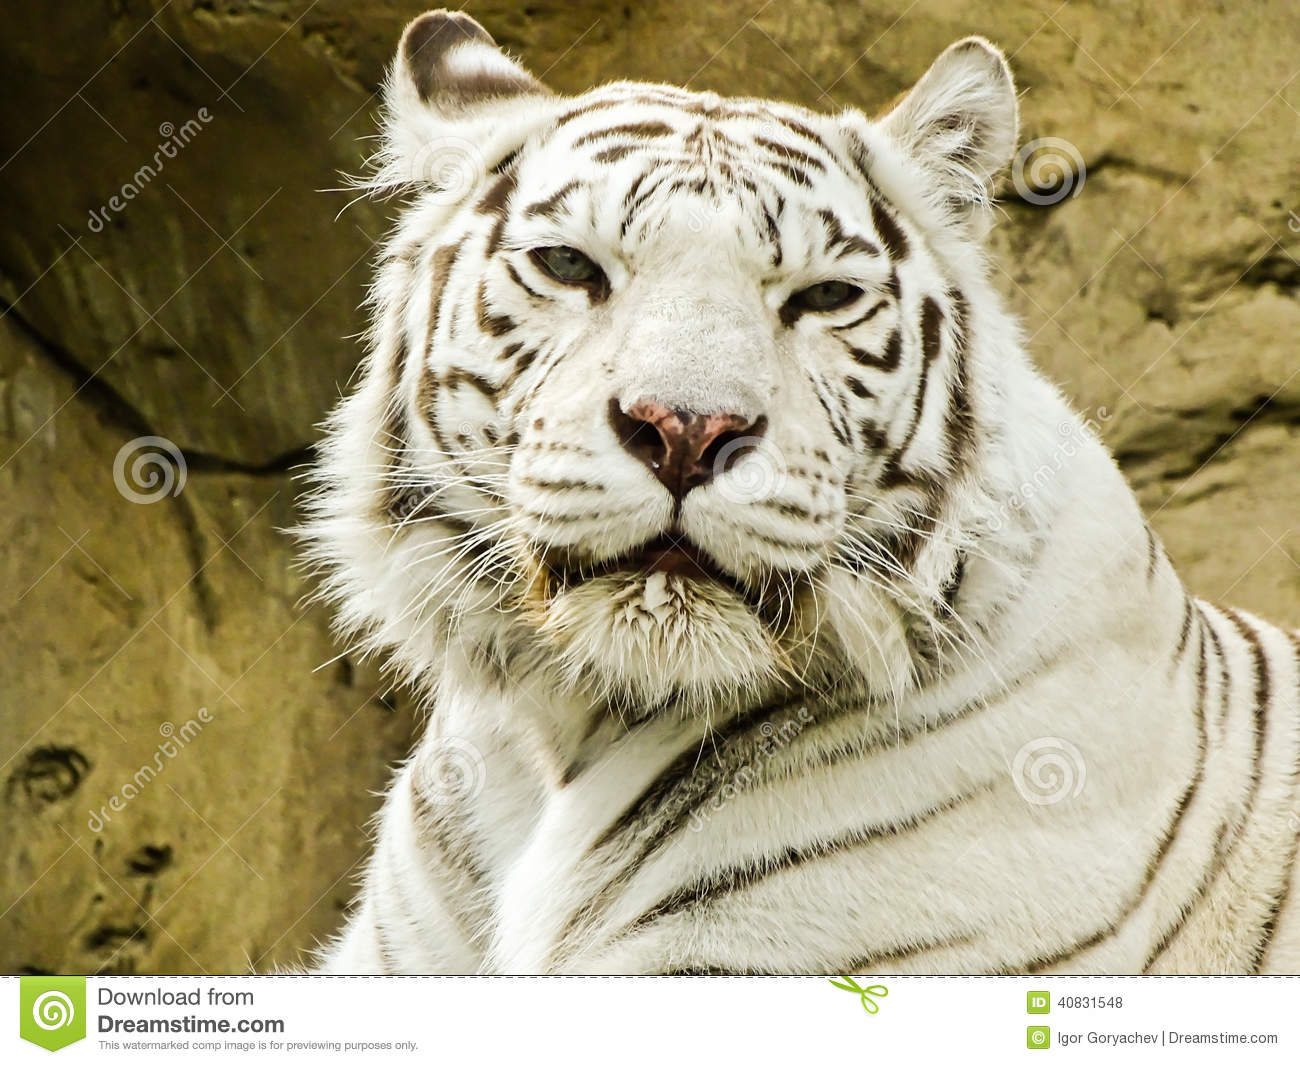 Zoologist With White Tiger White tiger in moscow zooZoologist With Tiger